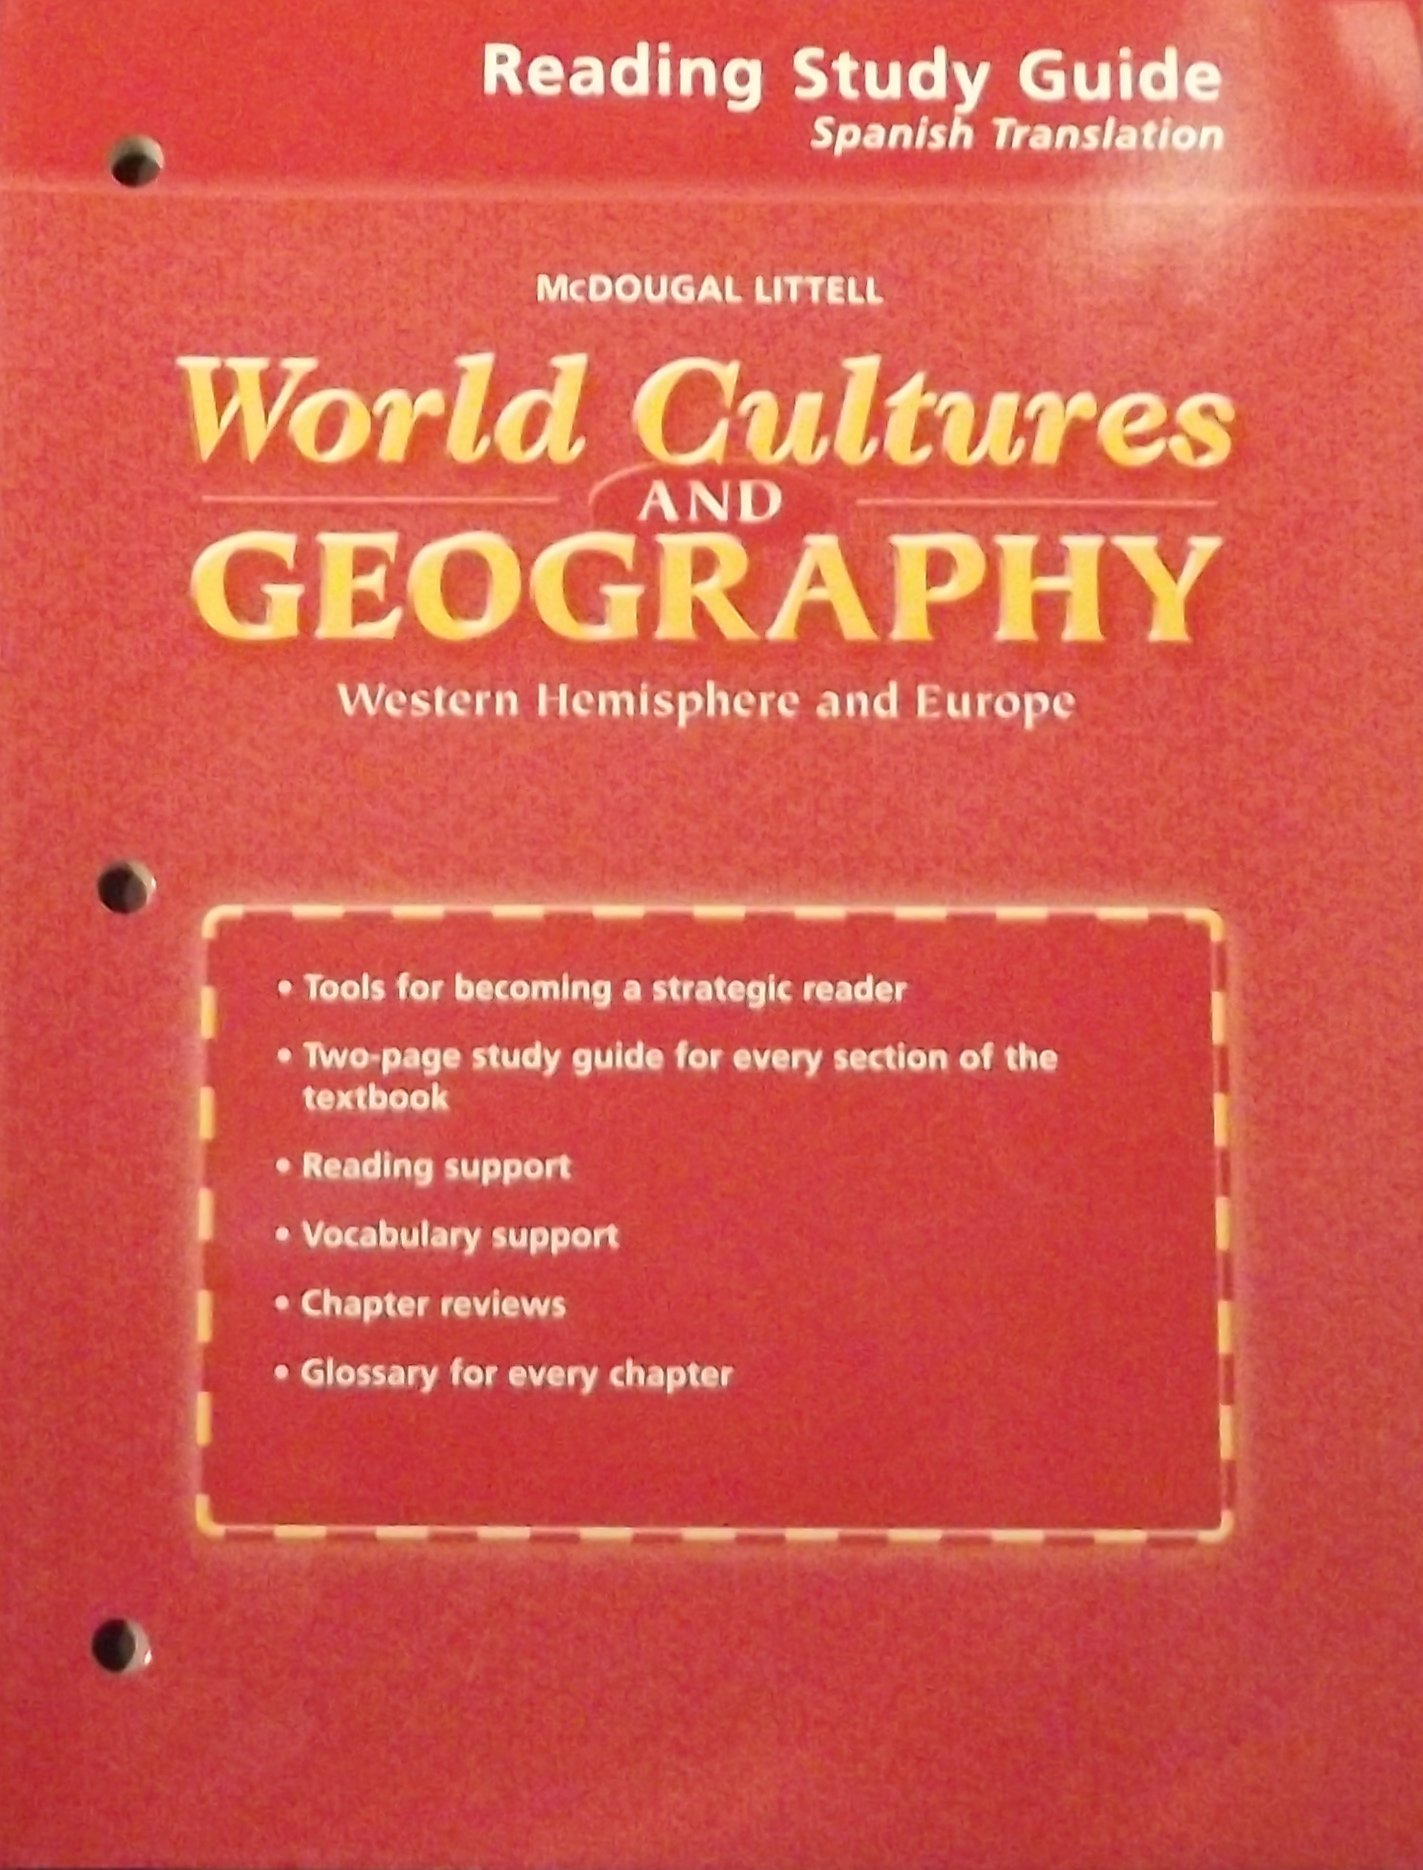 Read Online McDougal Littell World Cultures & Geography: Reading Study Guide (Spanish Translations) Grades 6-8 Western Hemisphere and Europe PDF